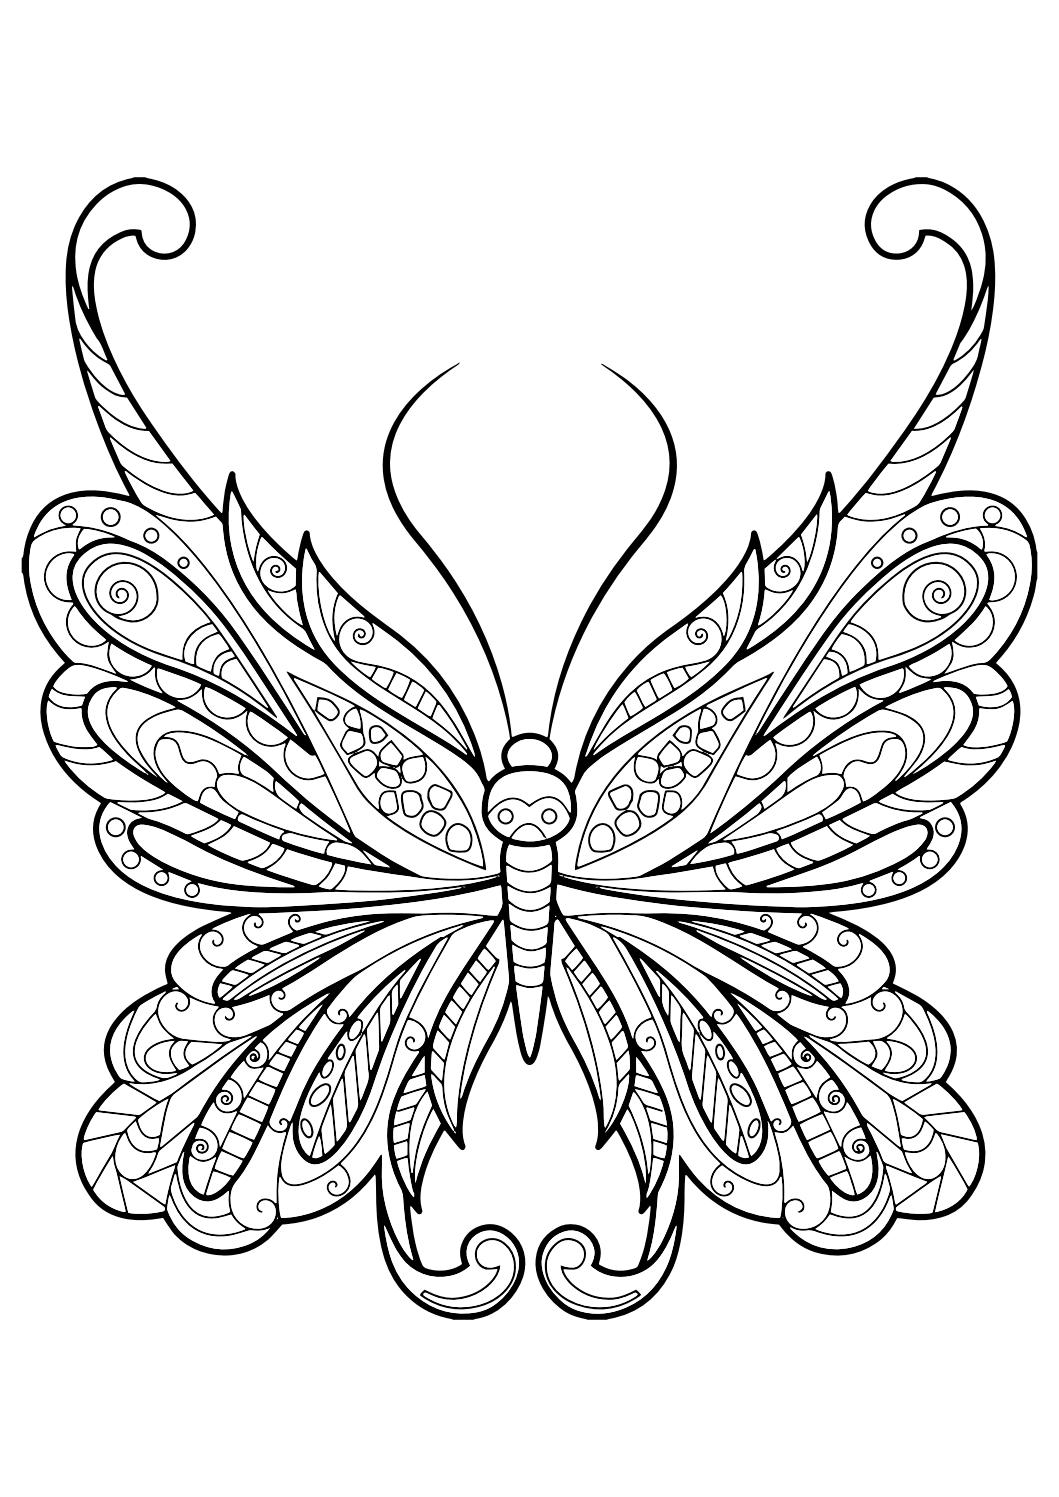 monarch butterfly coloring page monarch butterfly coloring pages to print free coloring coloring page monarch butterfly